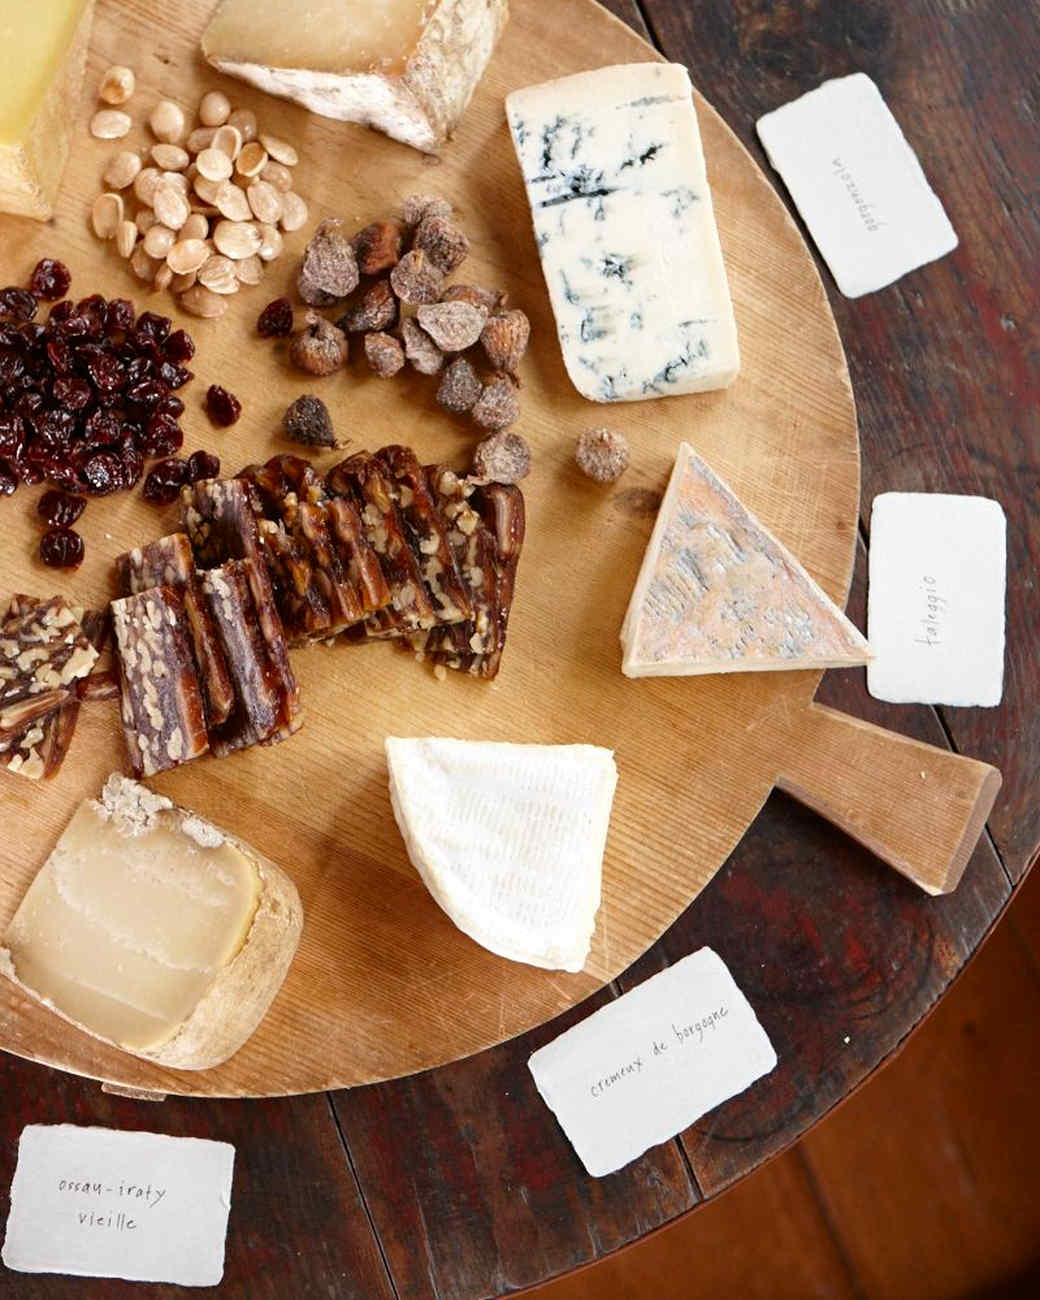 cheese-plate-ld107757.jpg